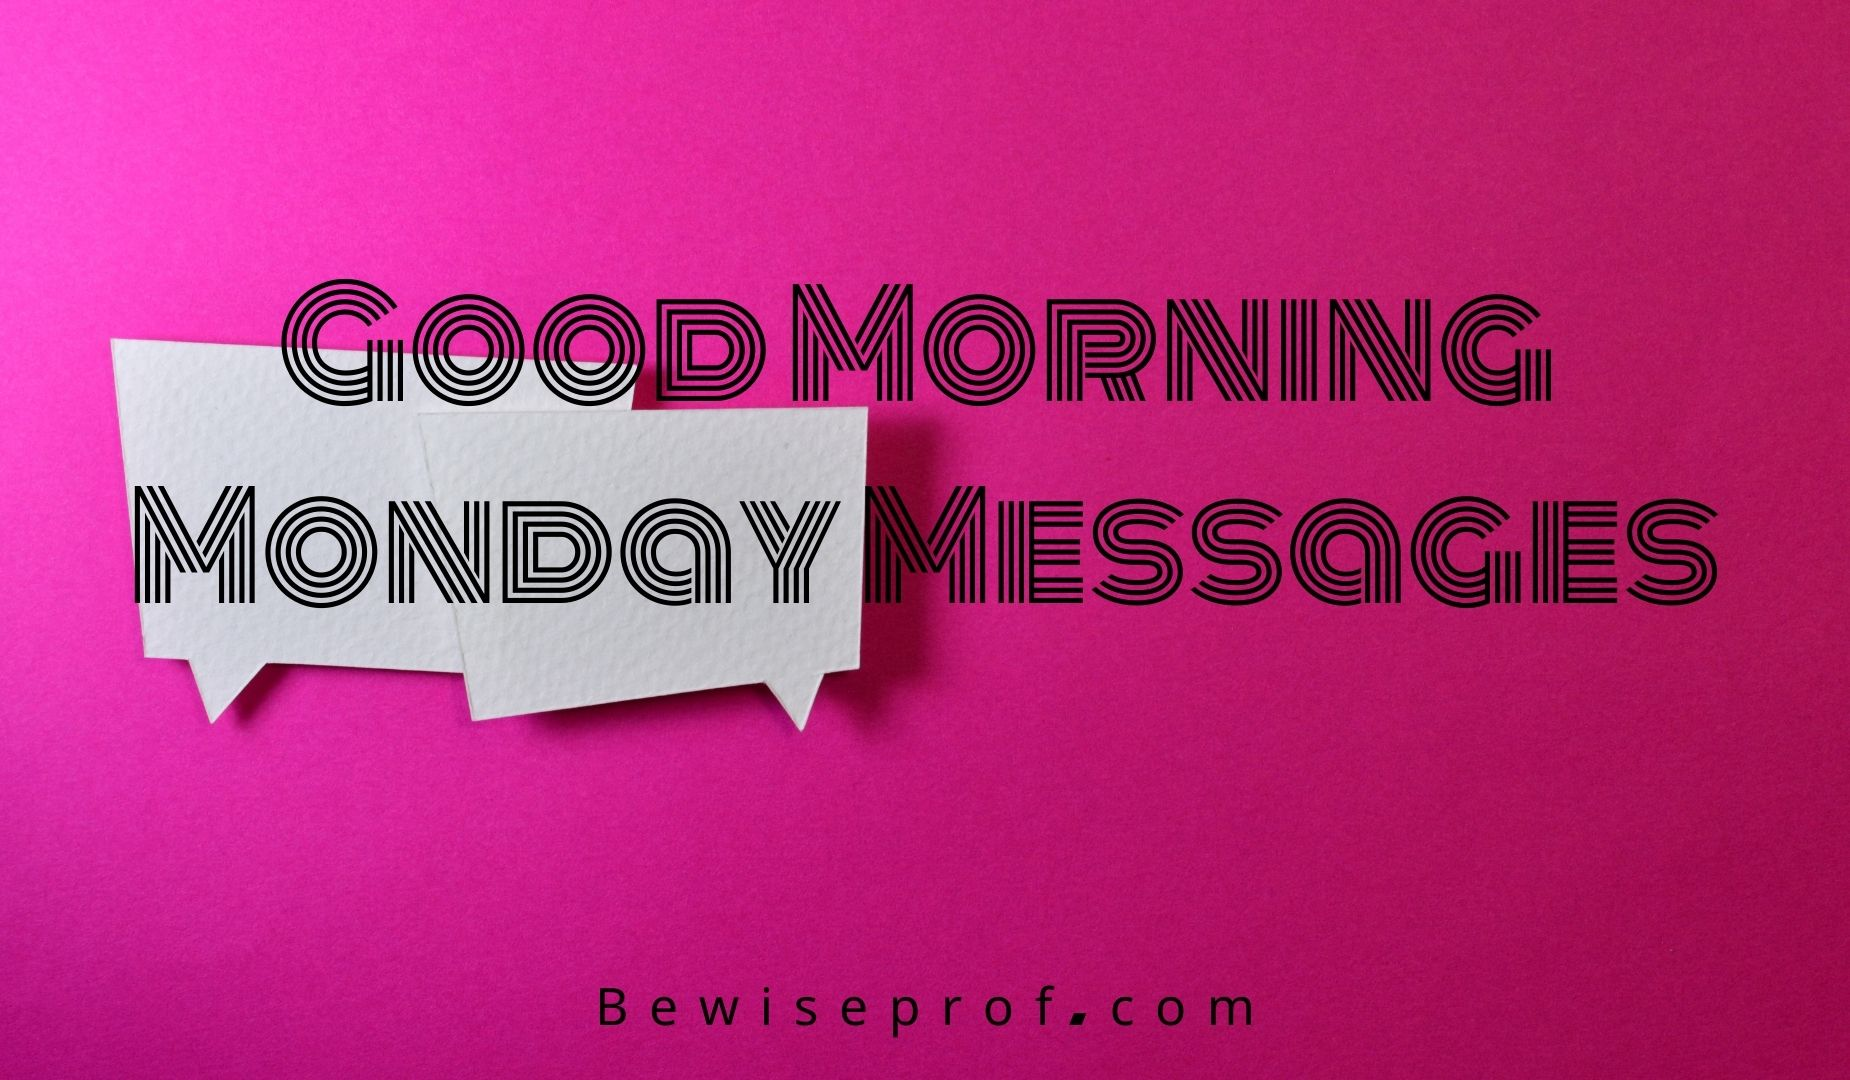 Good Morning Monday Messages